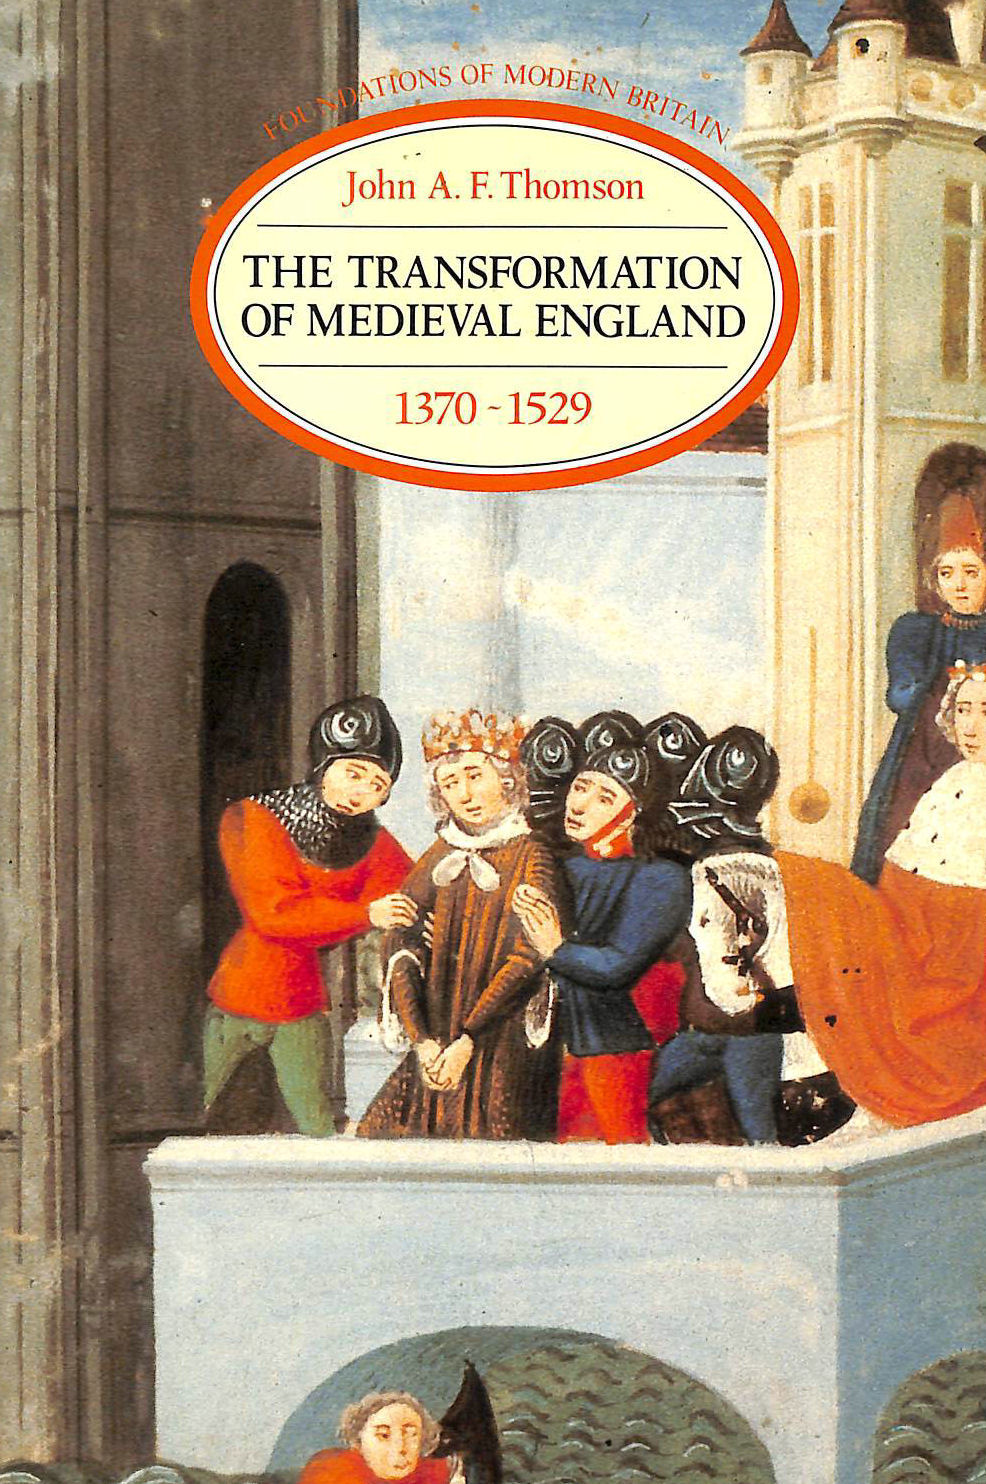 Image for Transformation of Medieval England 1370-1529, The (Foundations of Modern Britain)